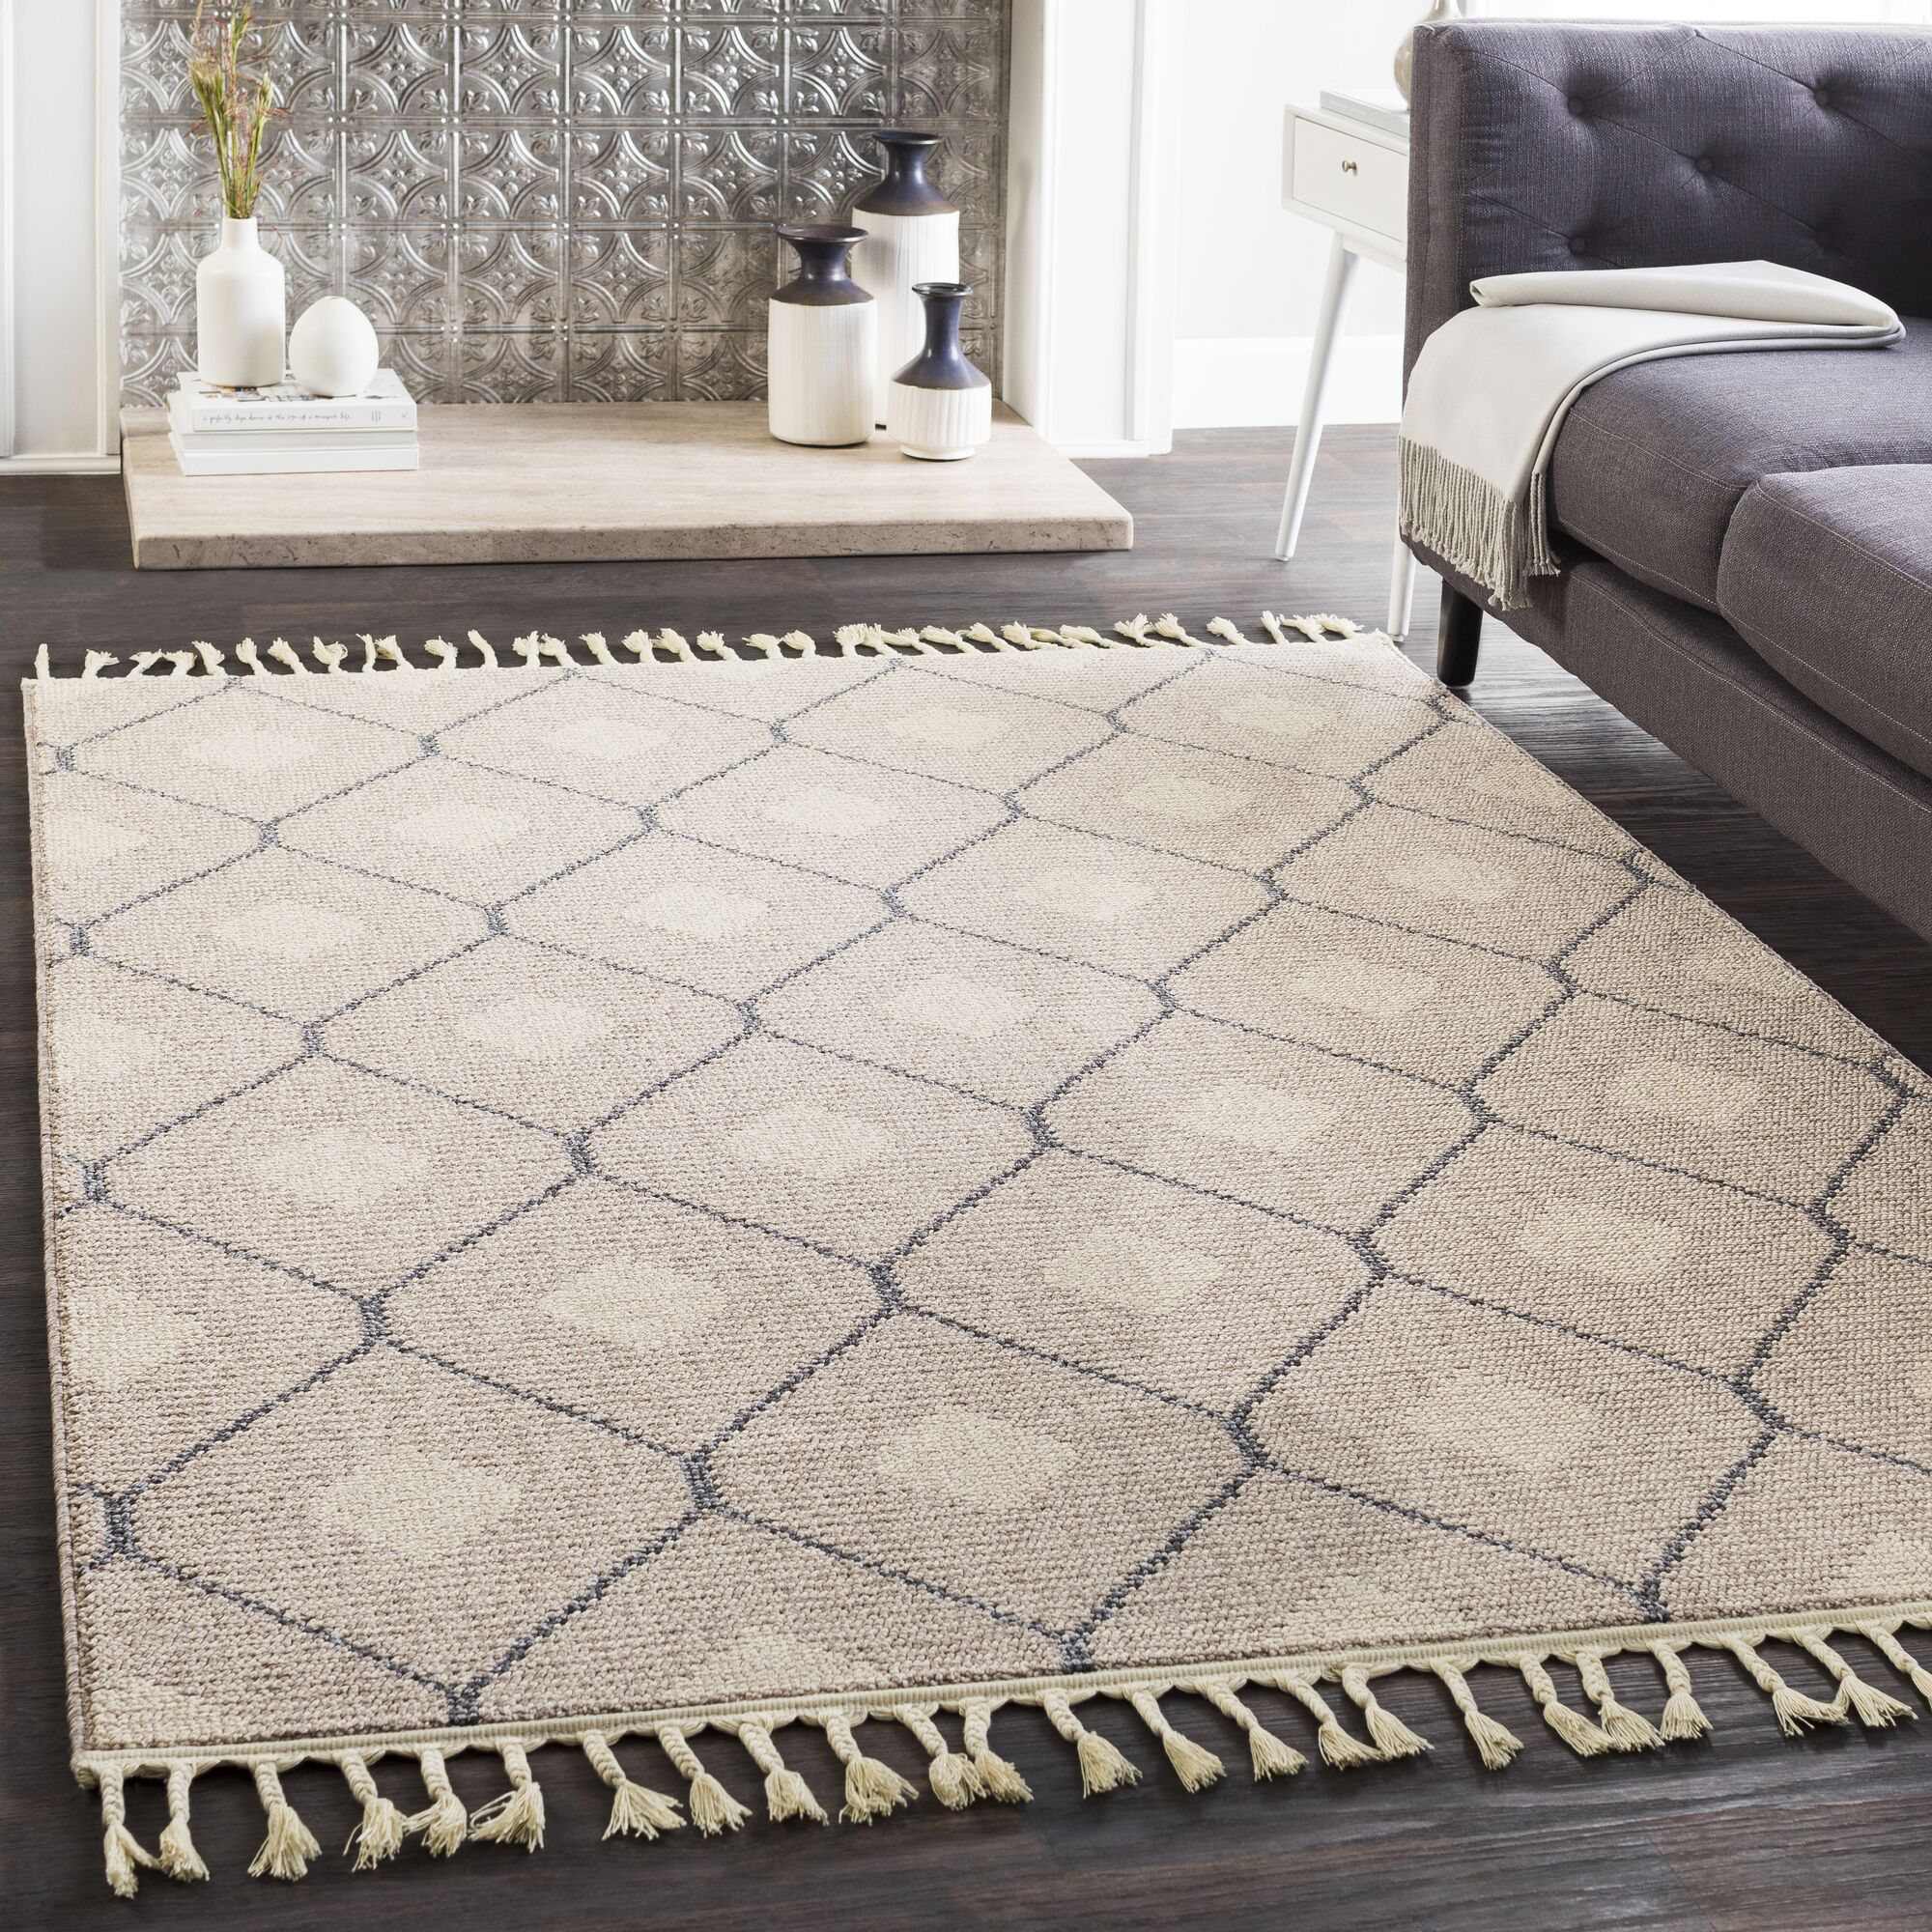 Clearwell Bohemian Taupe/Light Gray Area Rug Rug Size: Runner 2'7